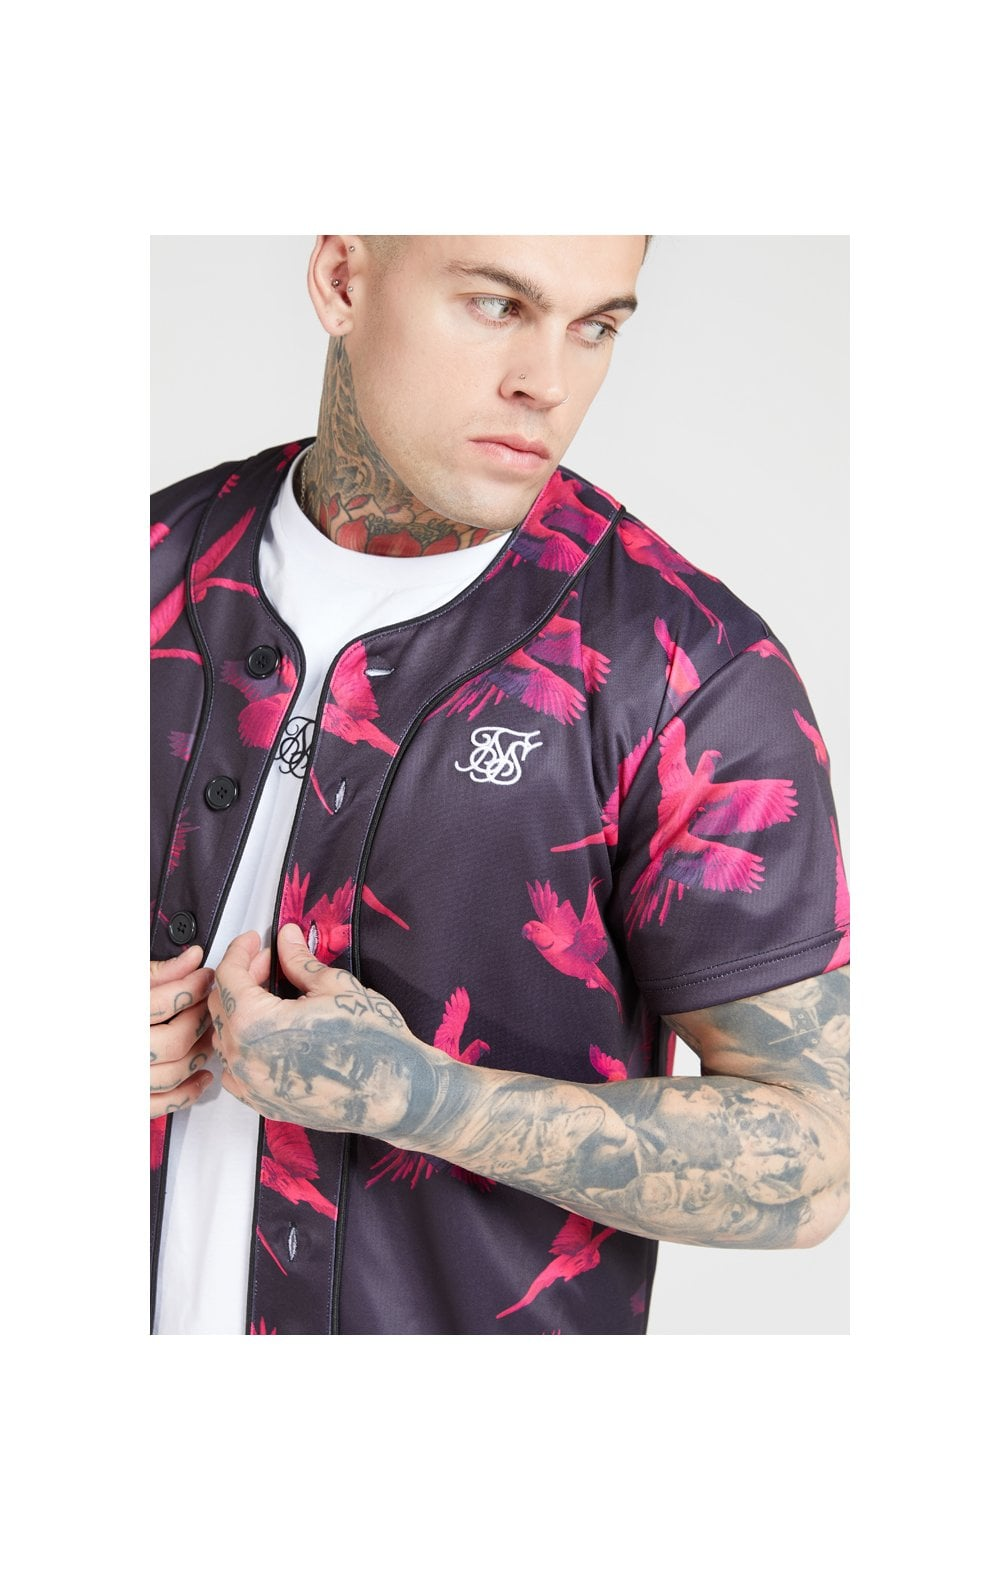 SikSilk Original Baseball Jersey – Black & Pink